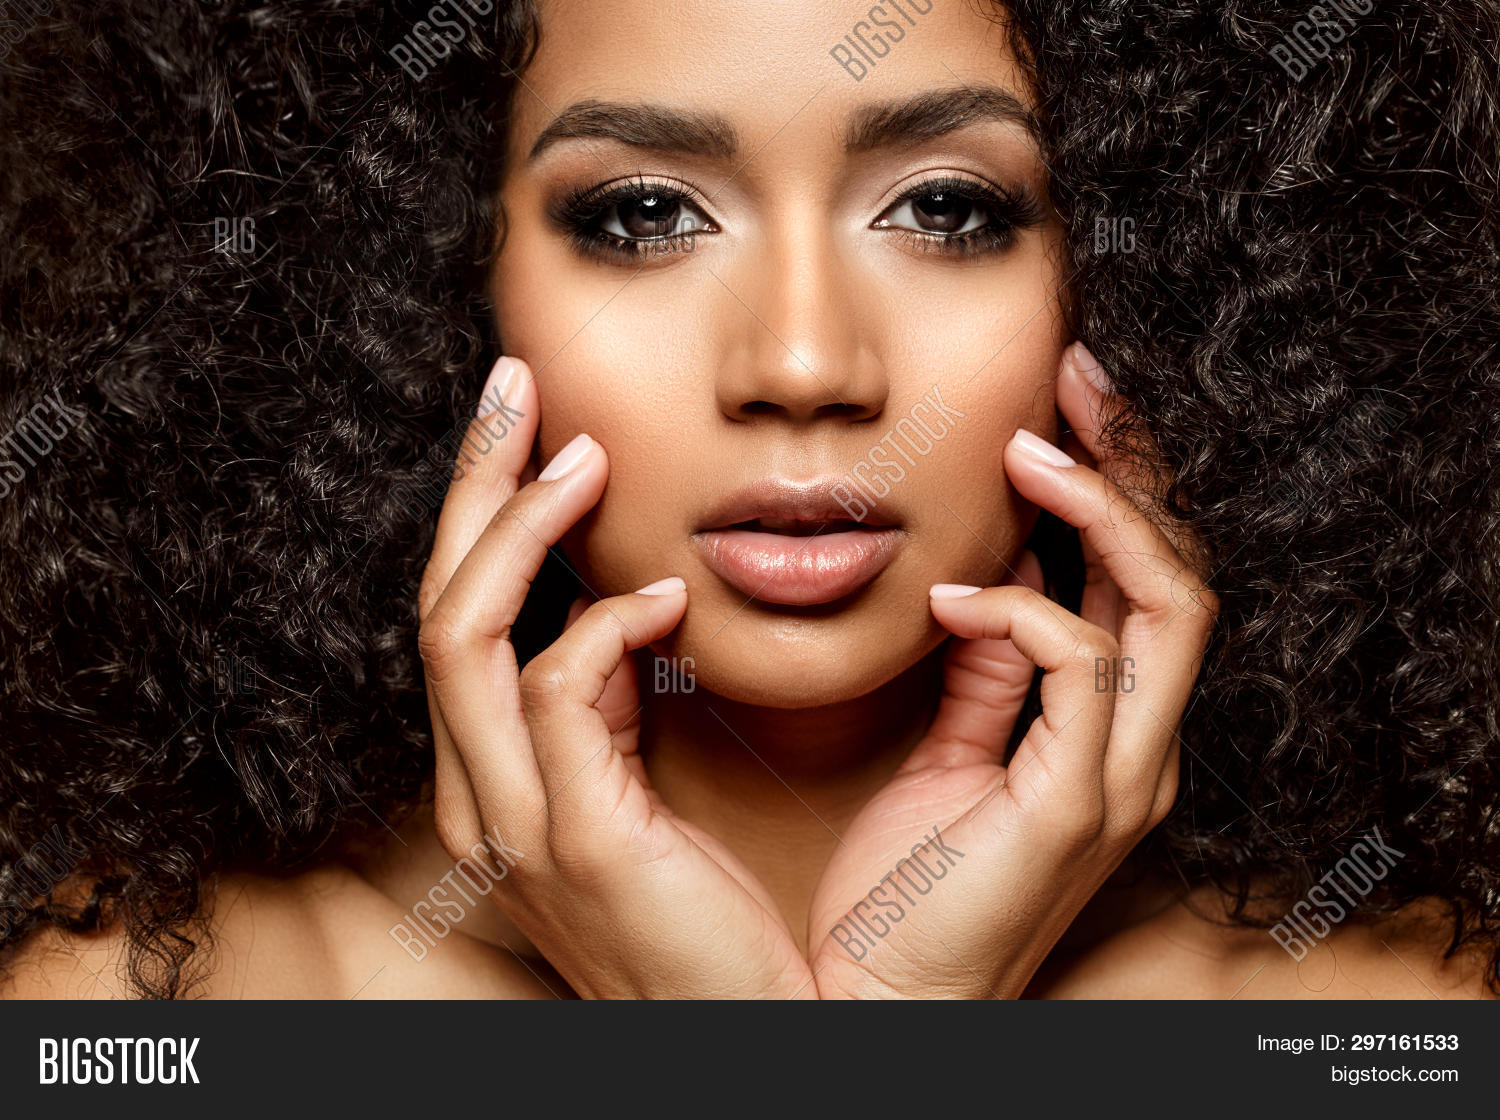 Beauty black skin woman African Ethnic female face. Young african american model with long afro hair